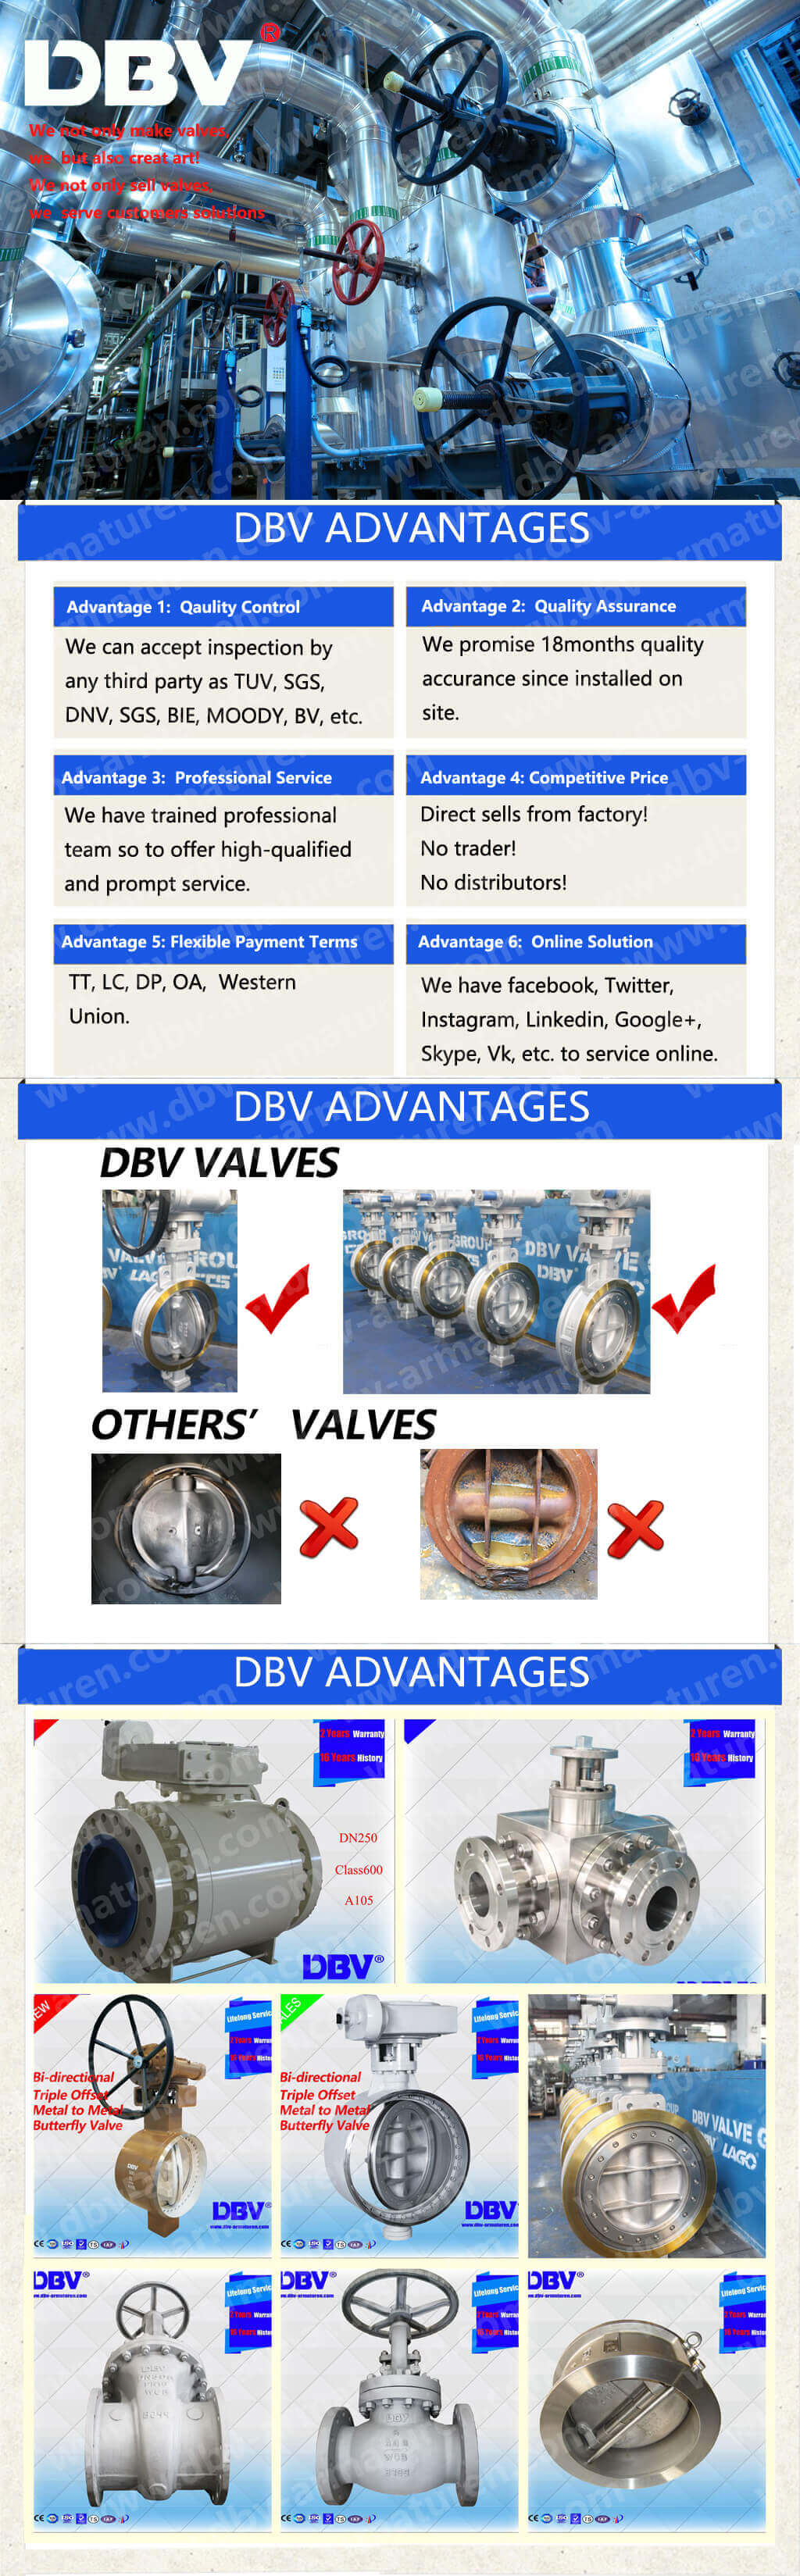 5 DBV ADVANTAGES